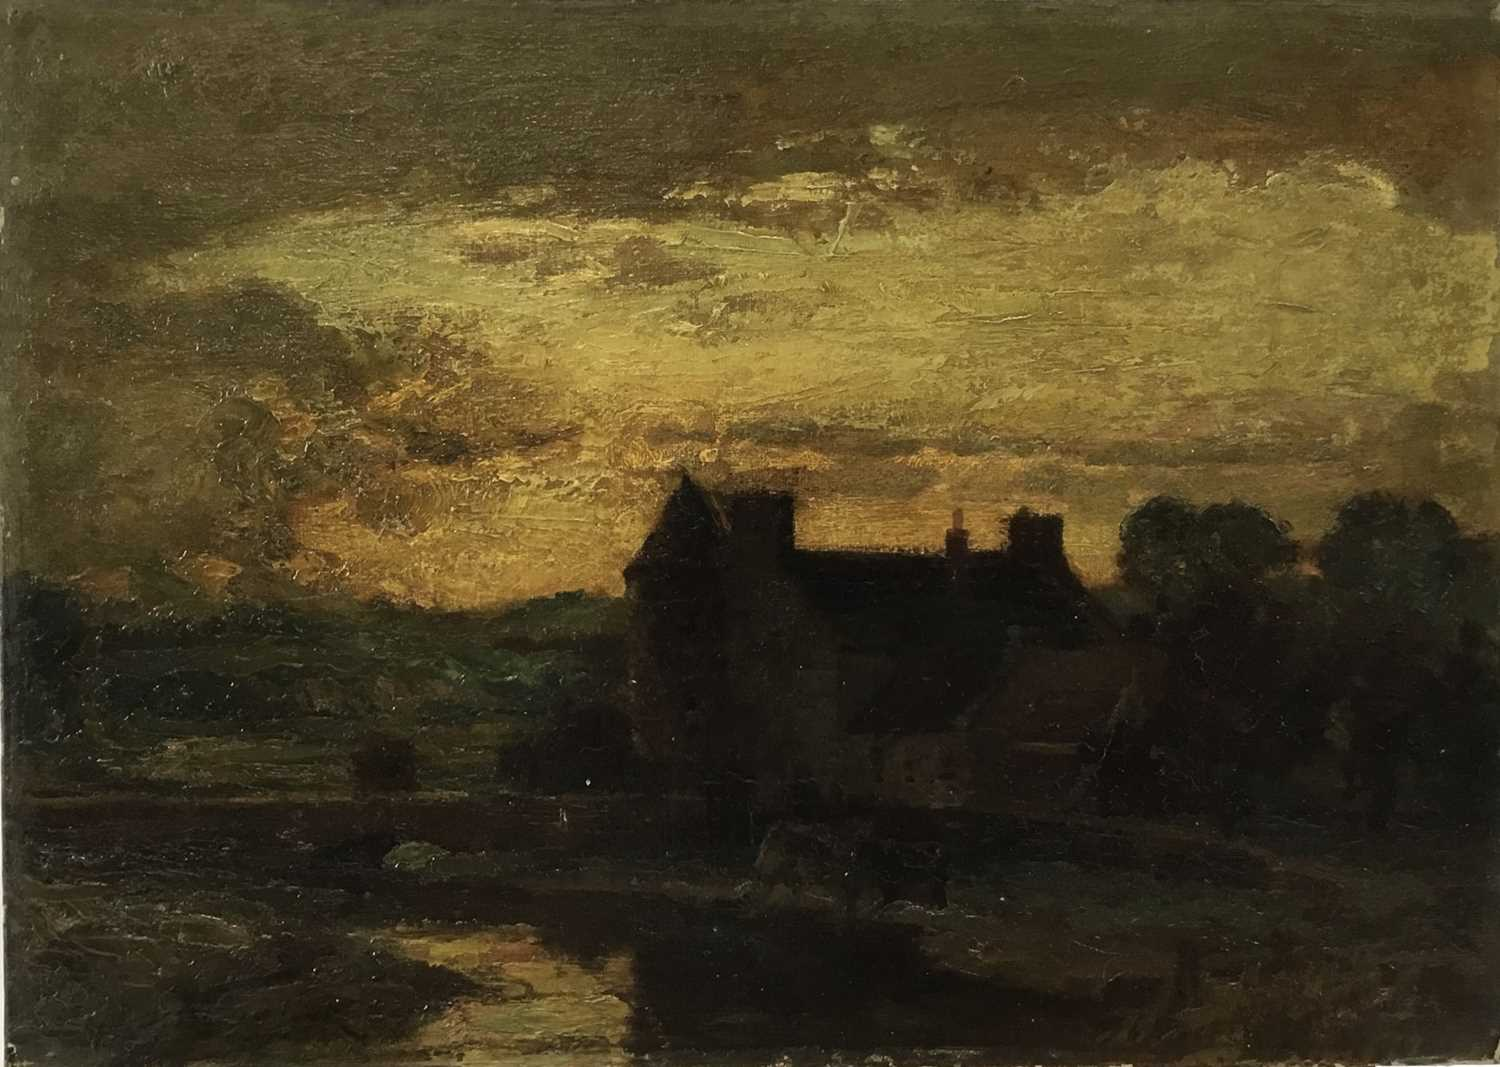 Attributed to Henry Jones Thaddeus (1859-1929) oil on board, landscape at dusk, 26 x 36cm, together